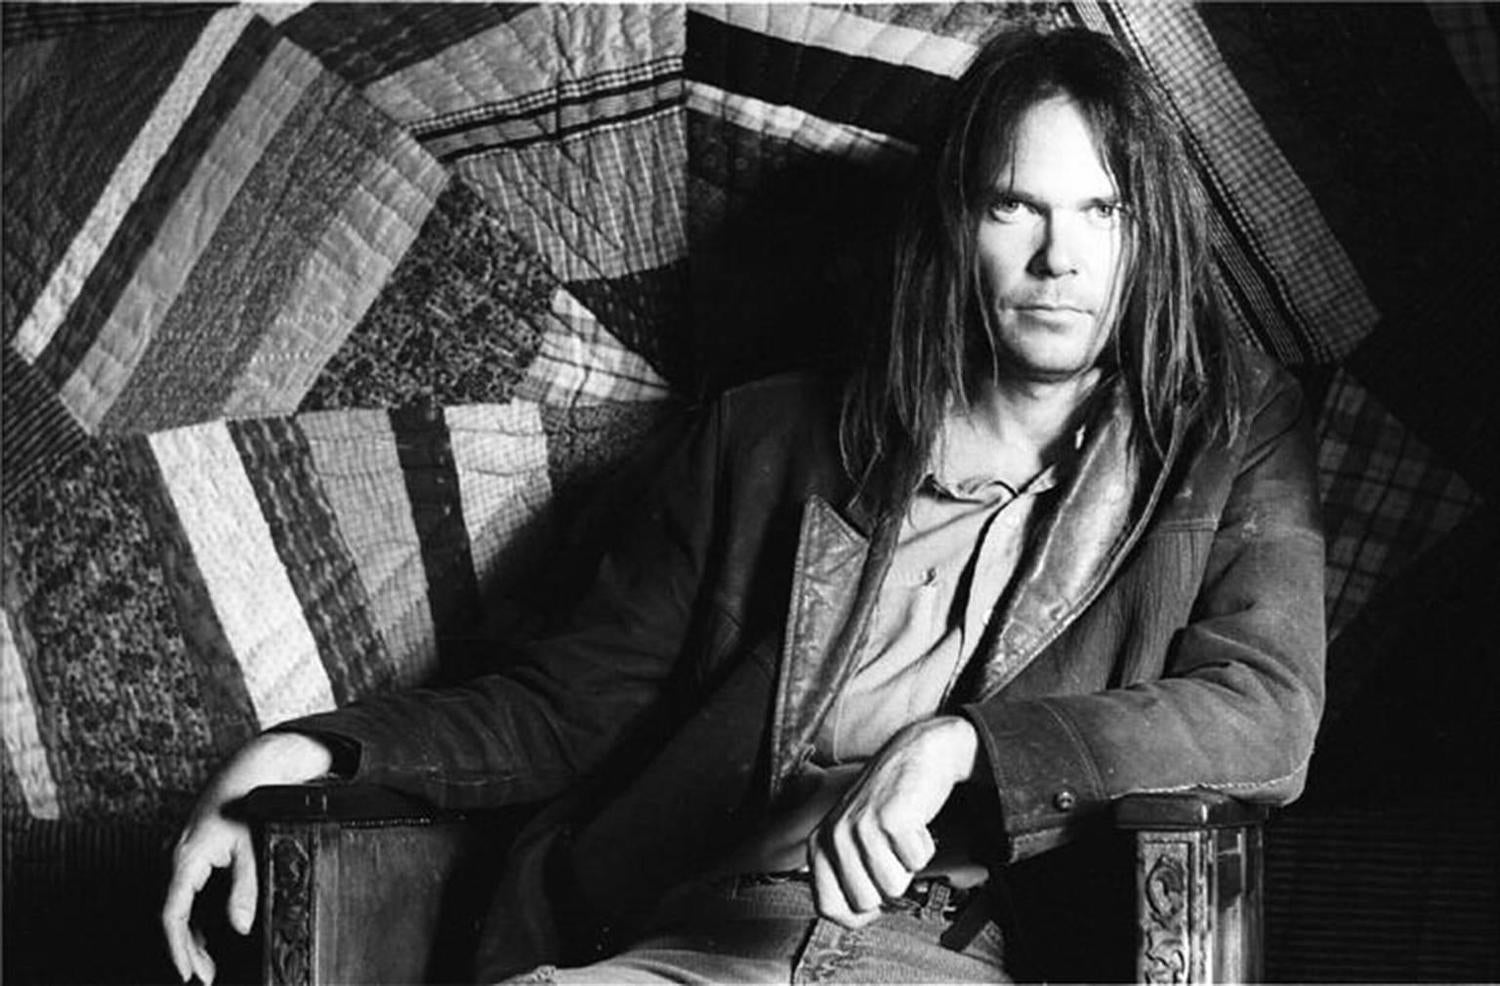 Henry Diltz - Neil Young, 1971 For Sale at 1stdibs